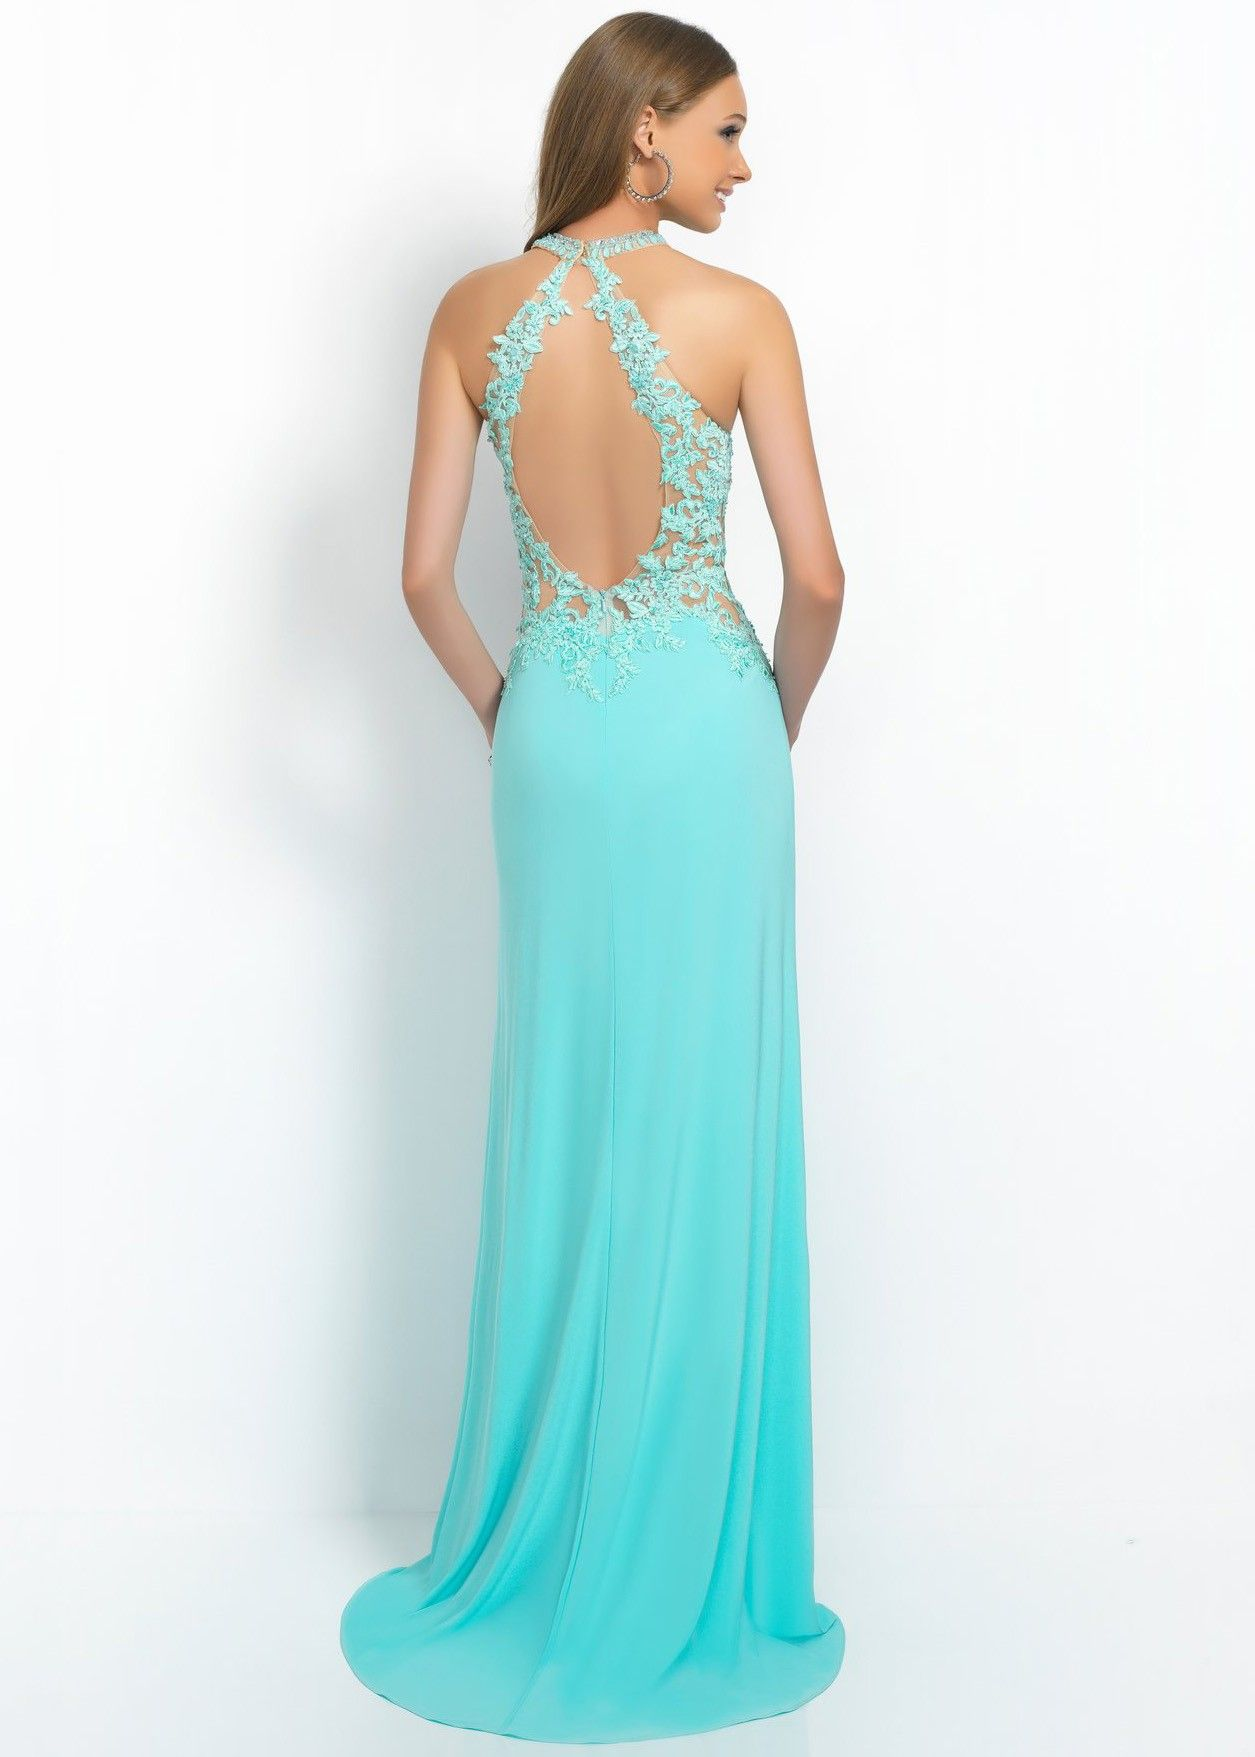 Intrigue 29 Lace Jersey Knit Gown   Prom dresses short   Pinterest ...